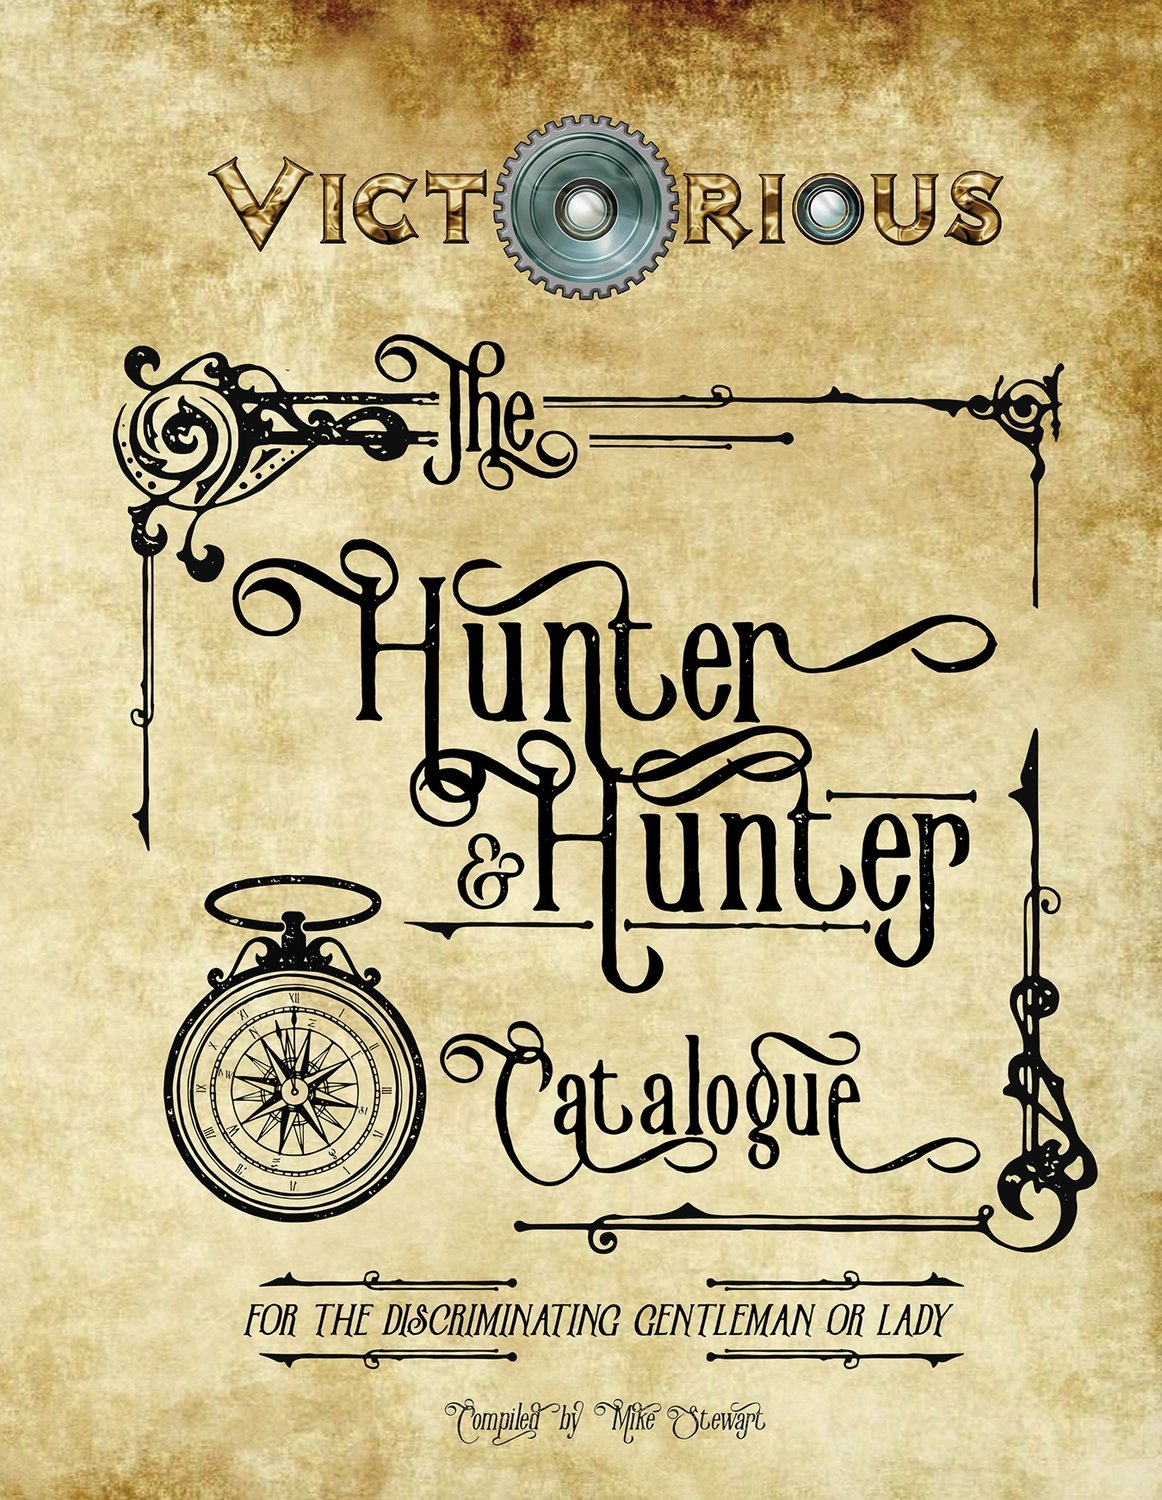 Victorious Hunter & Hunter Catalogue Print + Digital Combo